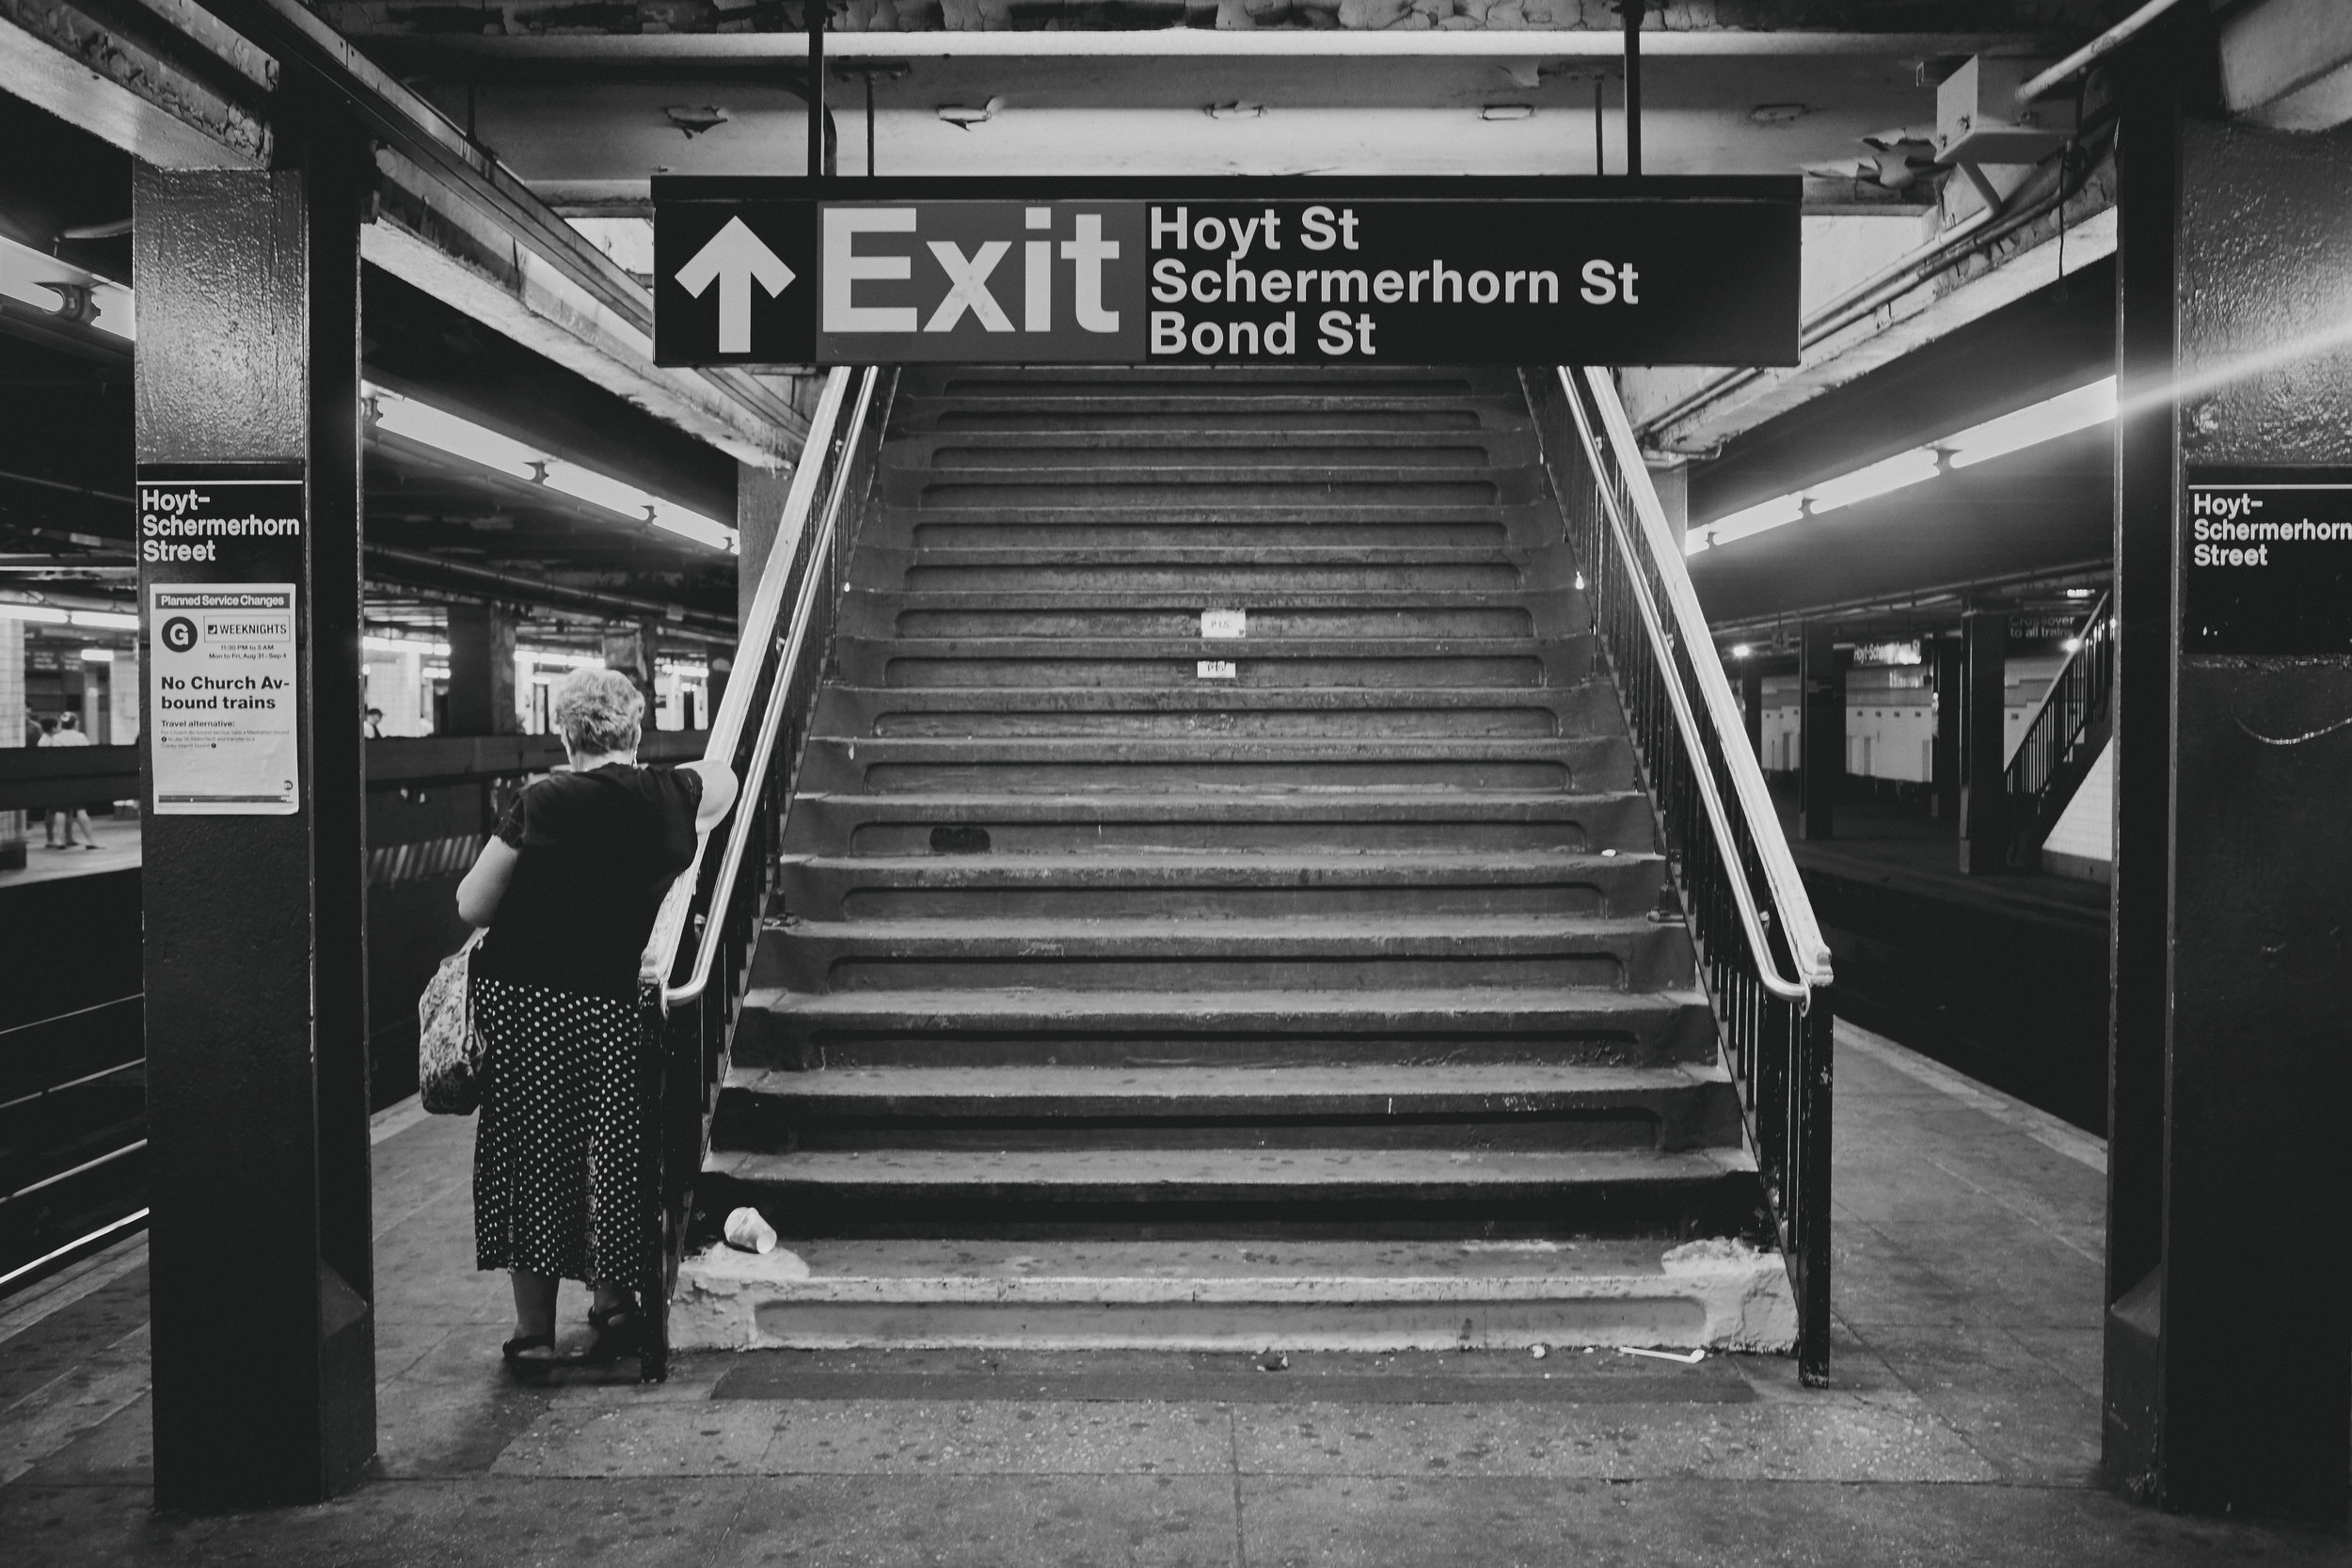 Everyone has one of the New York subway, right?